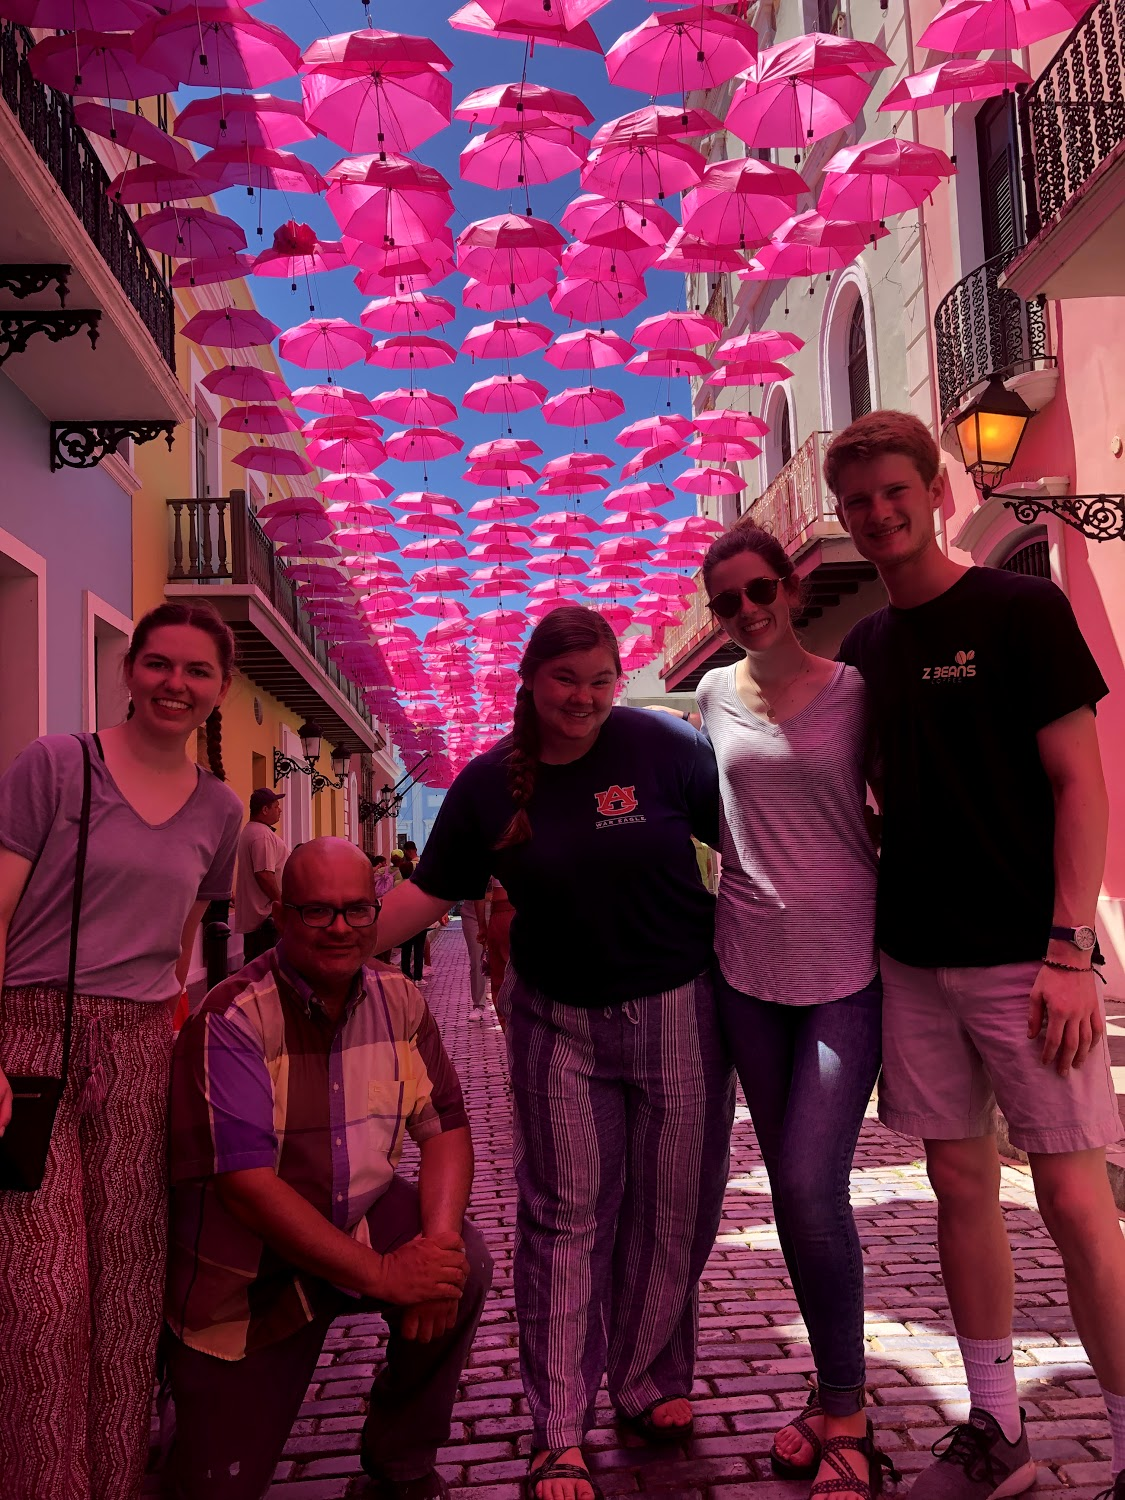 Team 1/ Alpha all take a moment to hang out at Umbrella Street after a week's work before heading back to the States. From left to right: Lindsey Baird, Miguel (our translator), Becca Lamb, Tatum Connell, Richard White